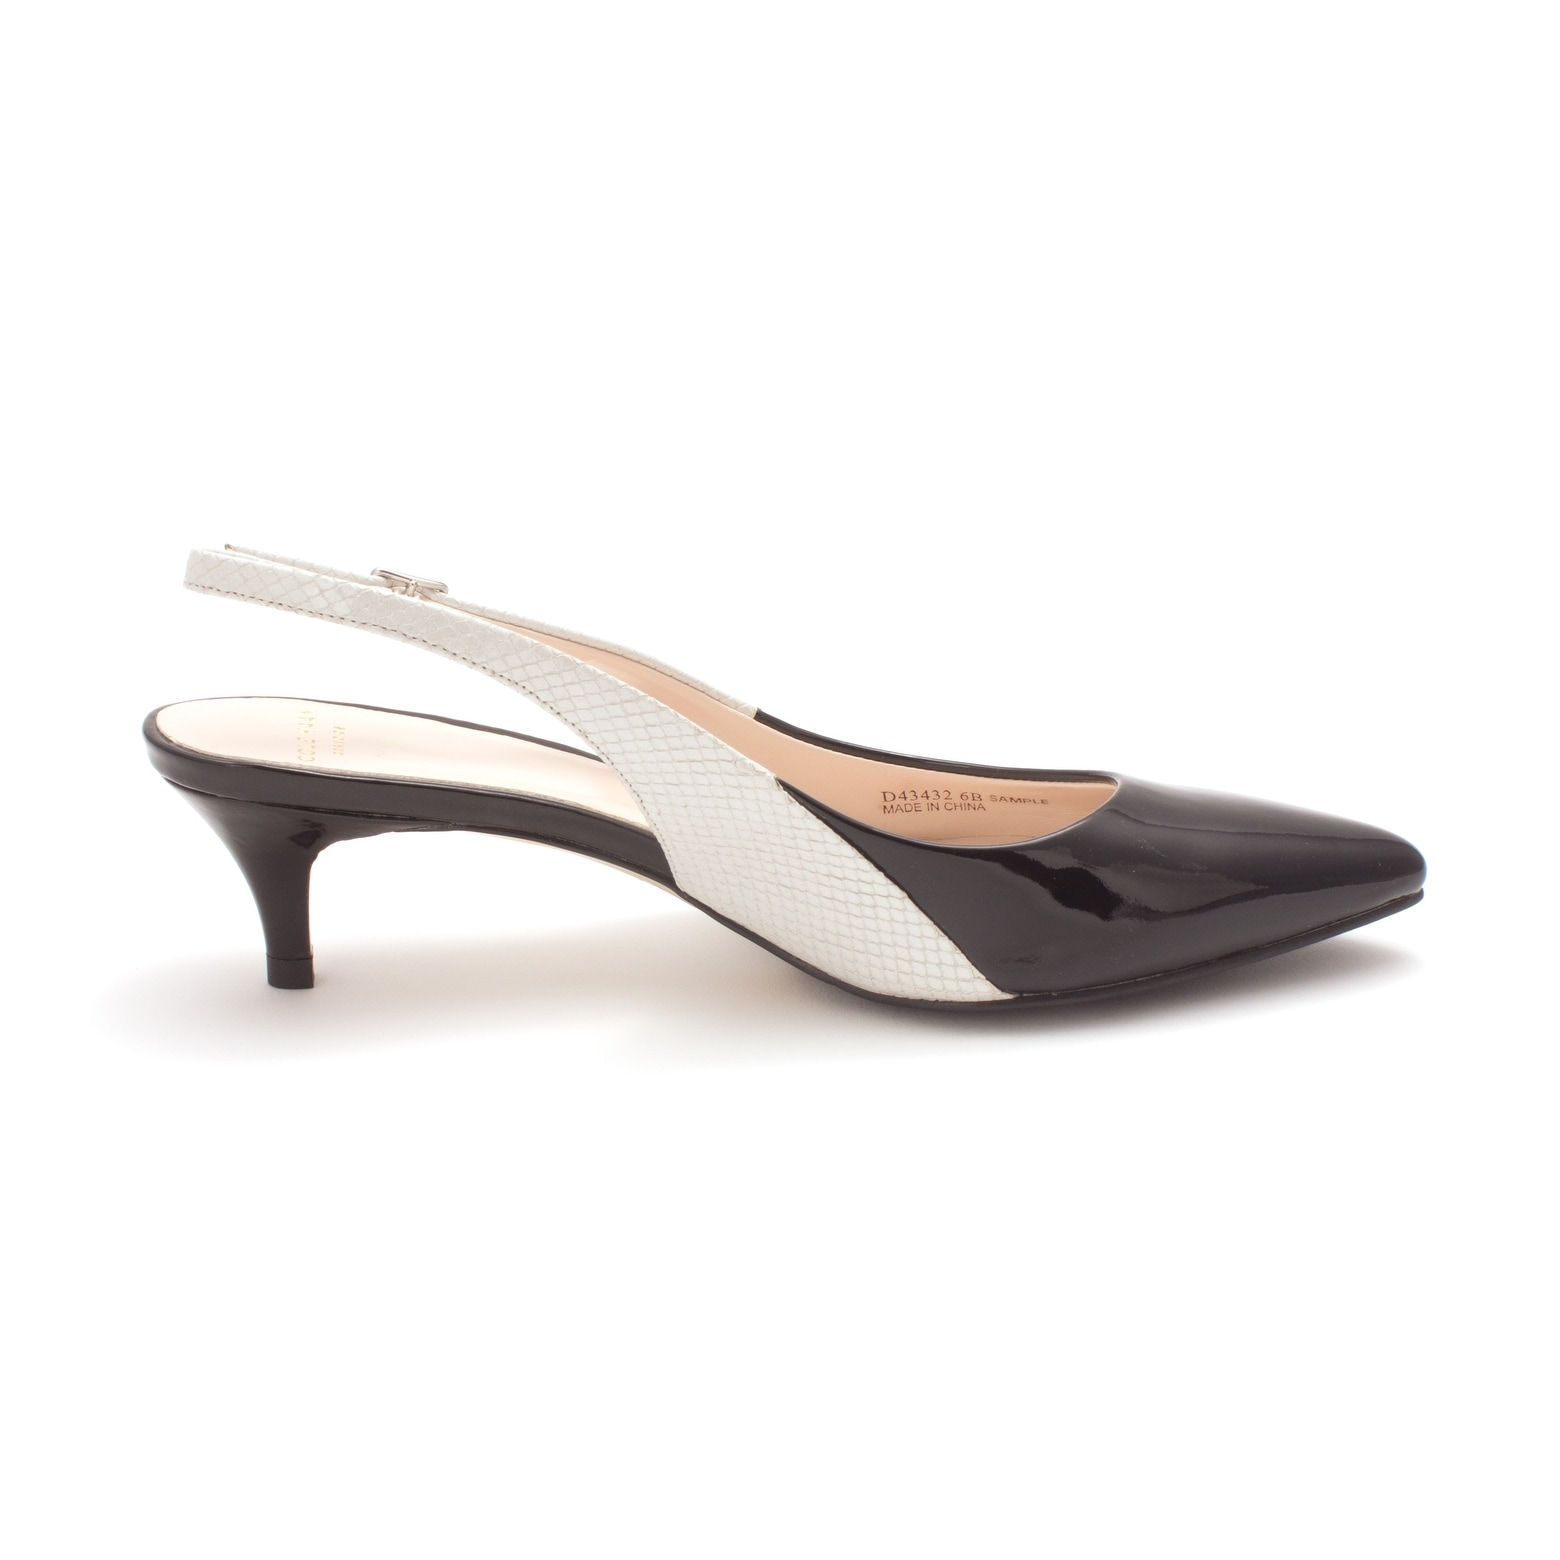 a14ff933ede2 Shop Cole Haan Womens 14A4063 Pointed Toe SlingBack Classic Pumps - 6 -  Free Shipping Today - Overstock - 19974509